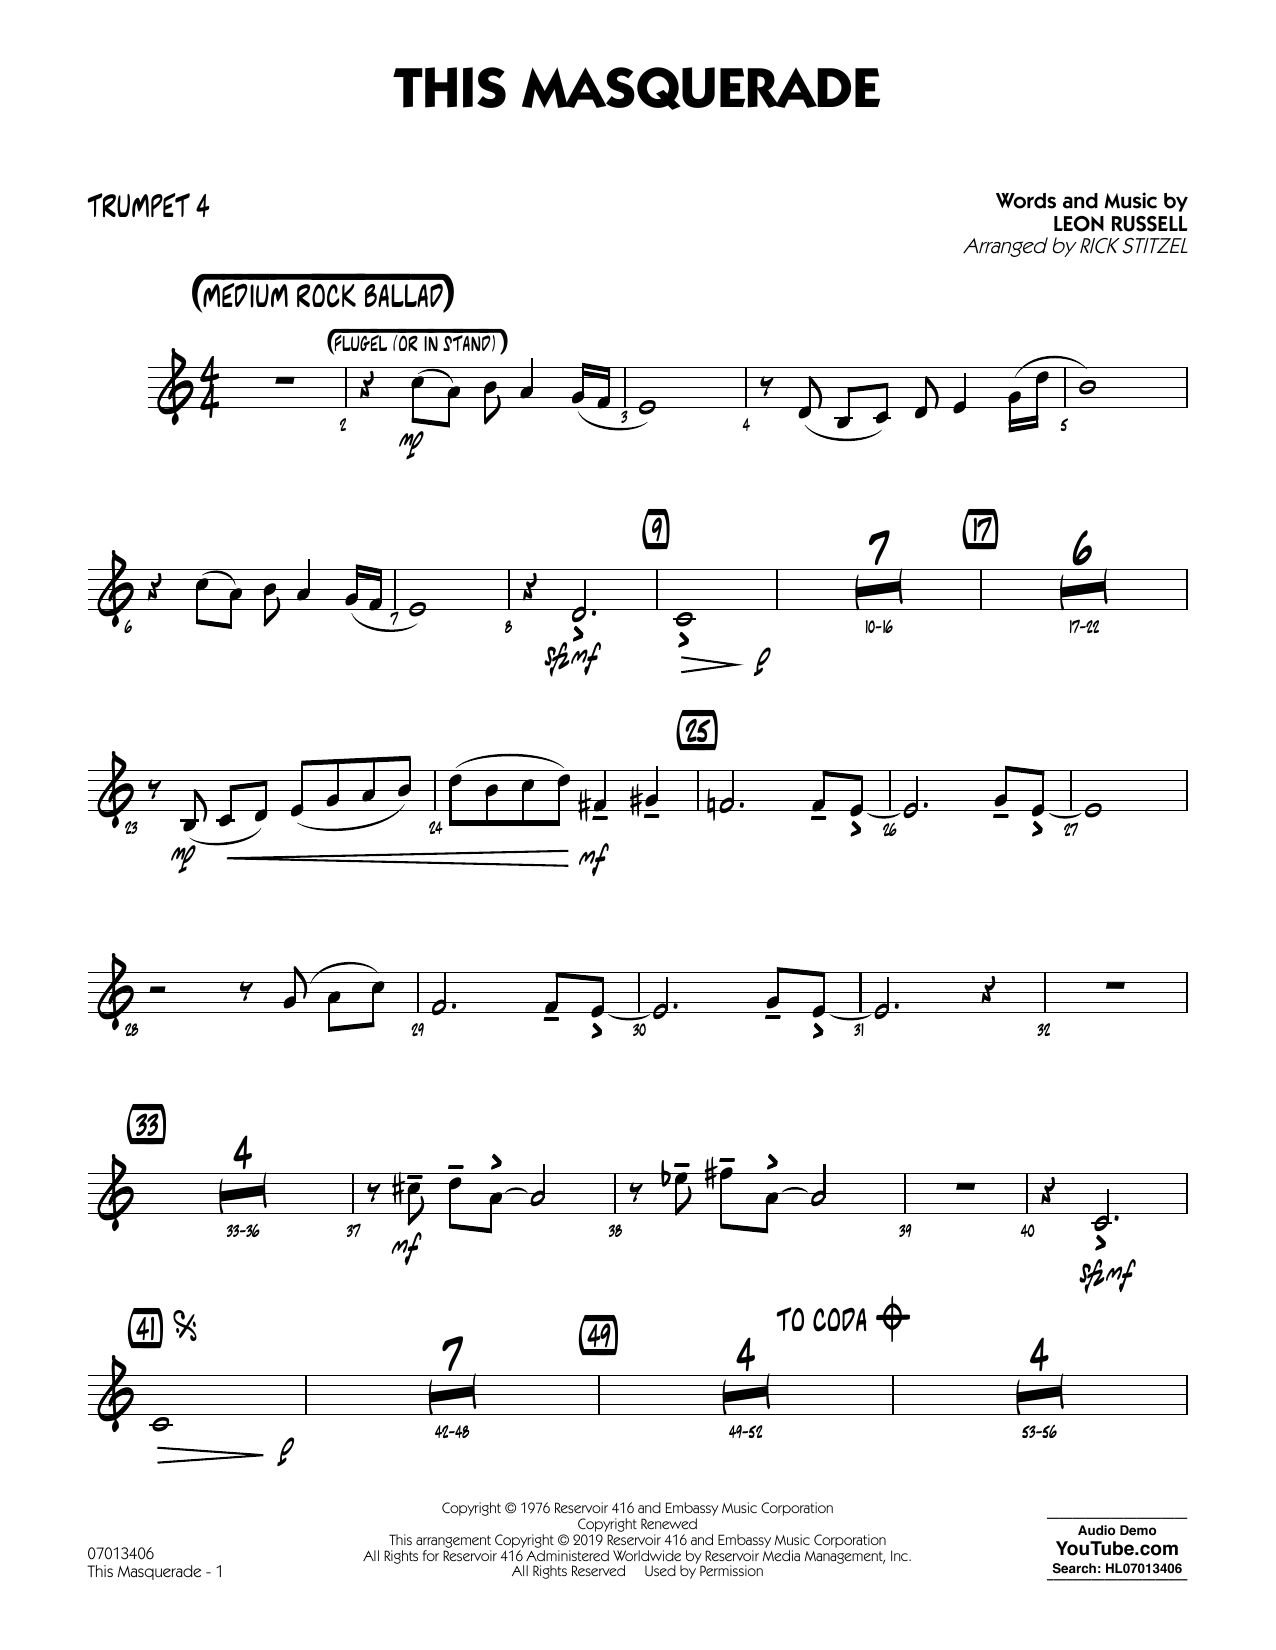 Leon Russell This Masquerade (arr. Rick Stitzel) - Trumpet 4 sheet music notes and chords. Download Printable PDF.